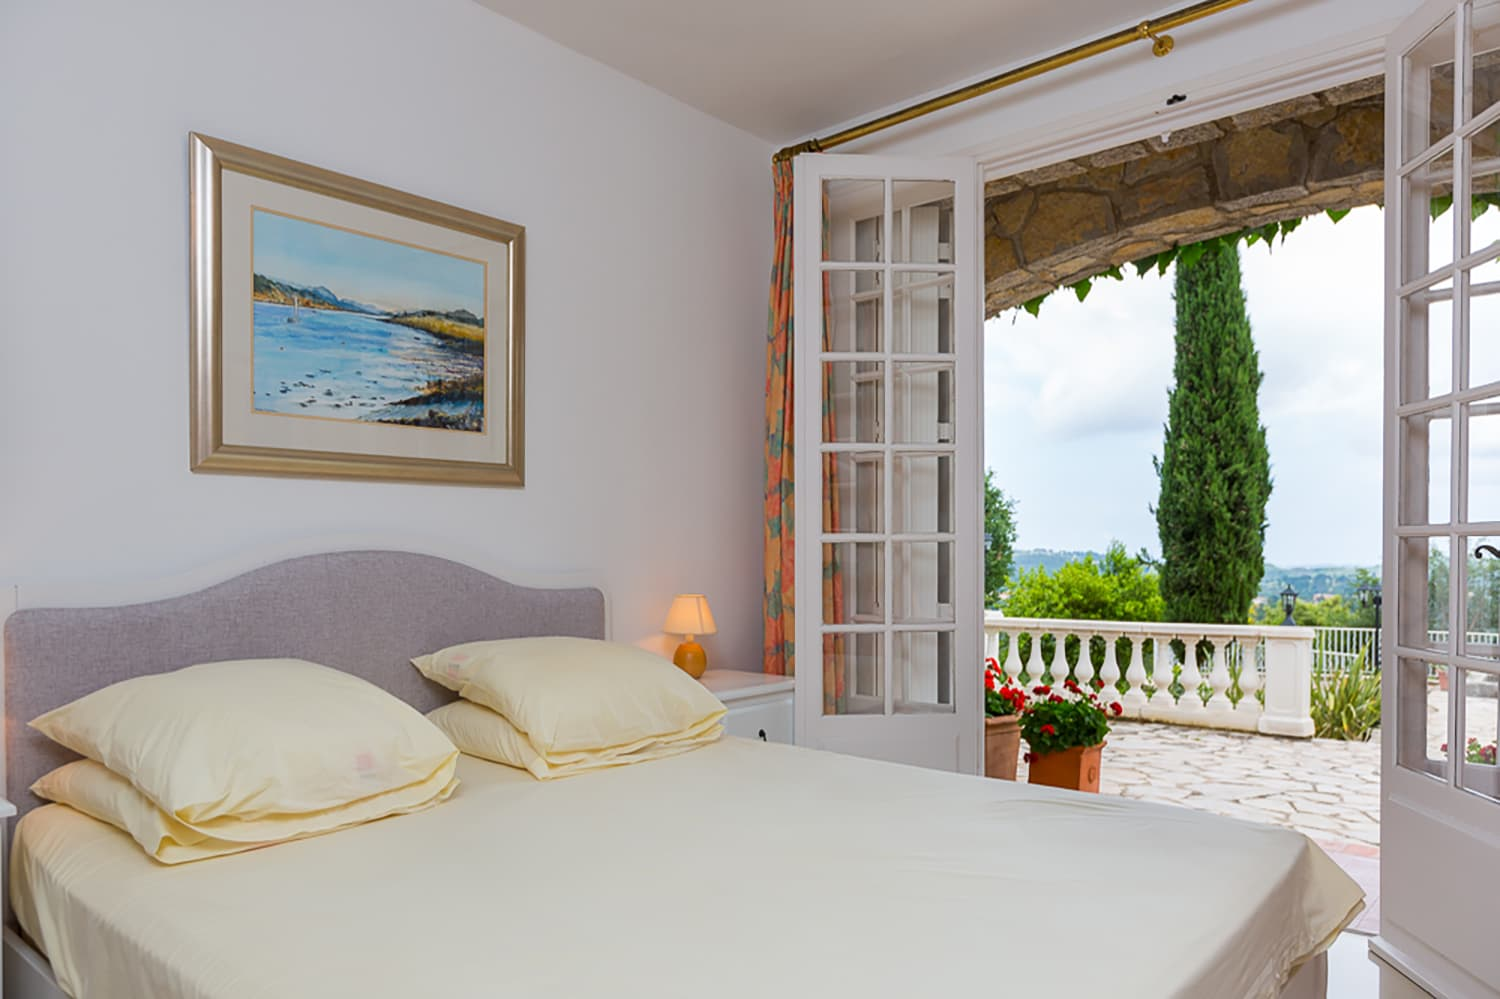 Bedroom in Provence-Alpes-Côte d'Azur holiday villa